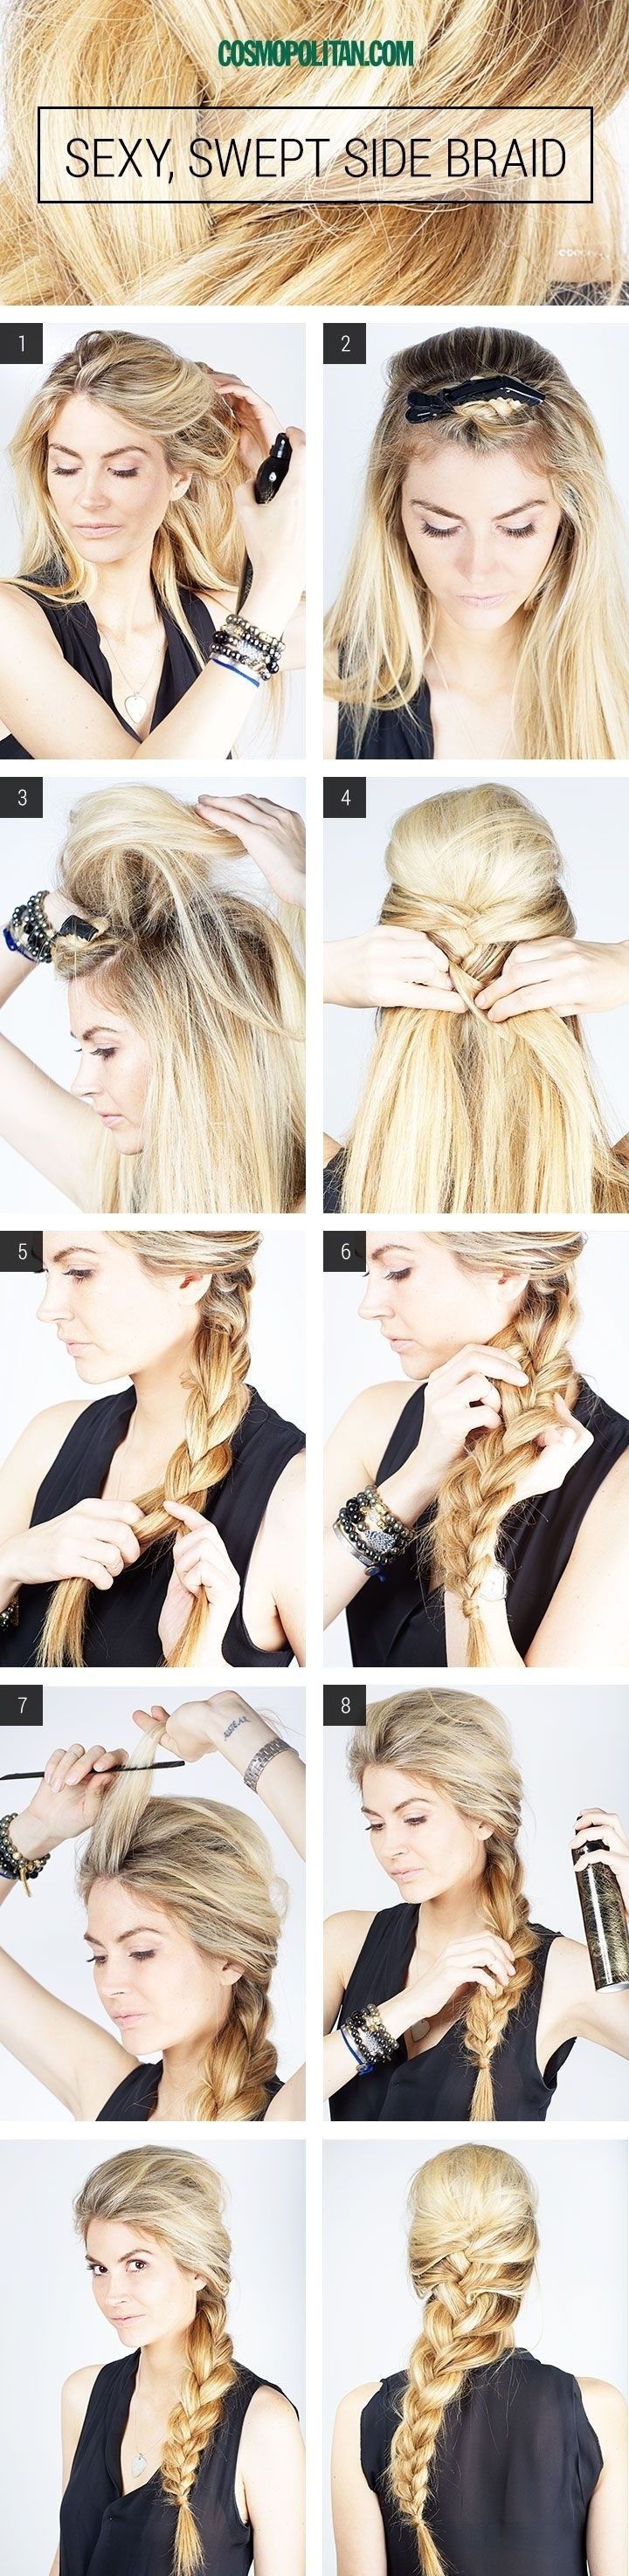 12 Amazing French Braid Hairstyles for 2015